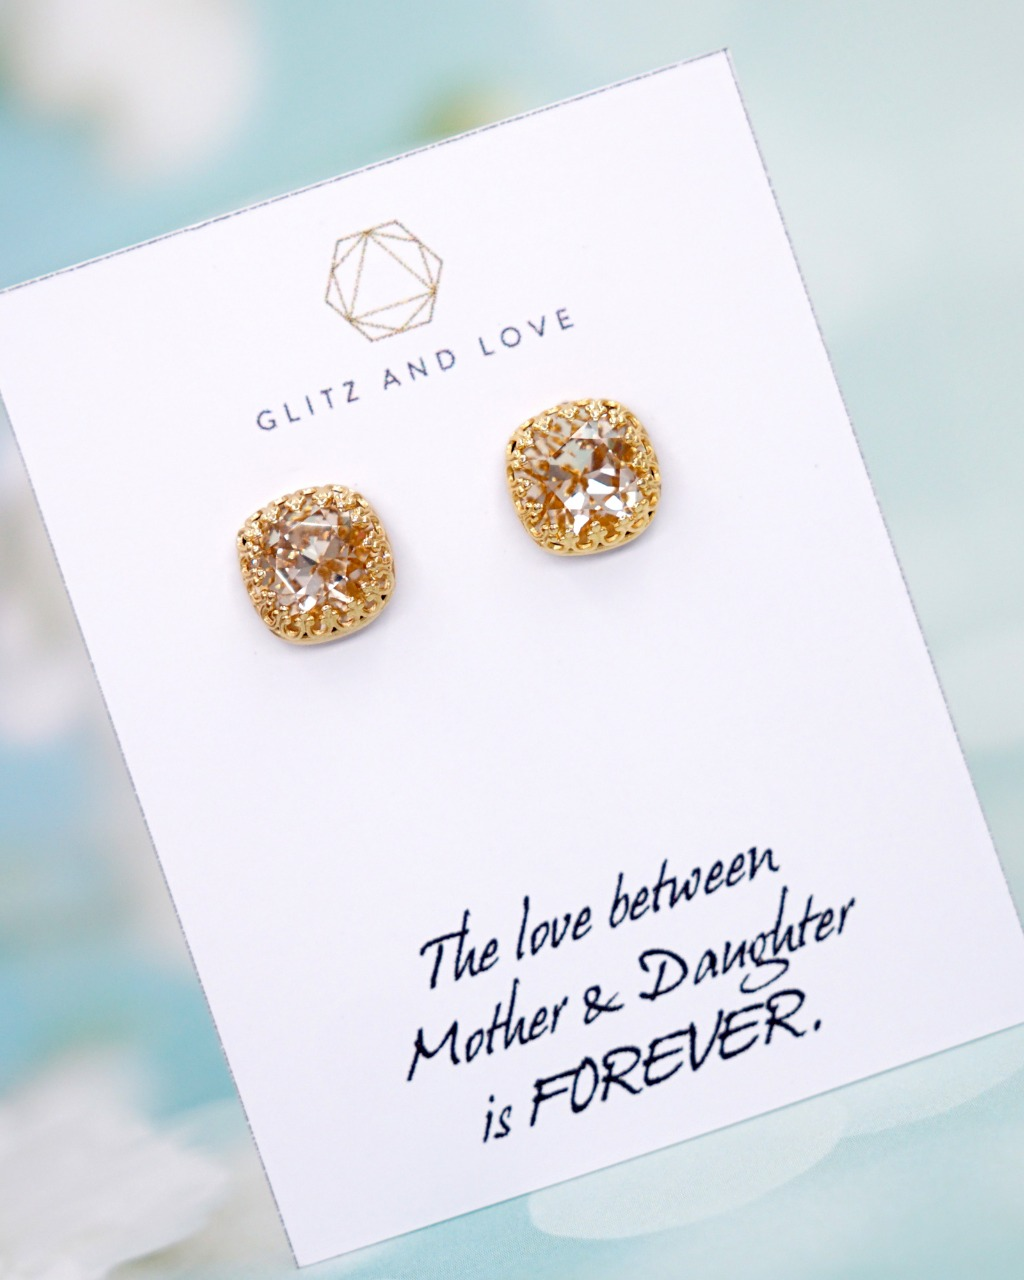 Light Silk Cushion Swarovski Ear Studs - Welcome to Glitz & Love where you will find a collection of exquisite and intricately